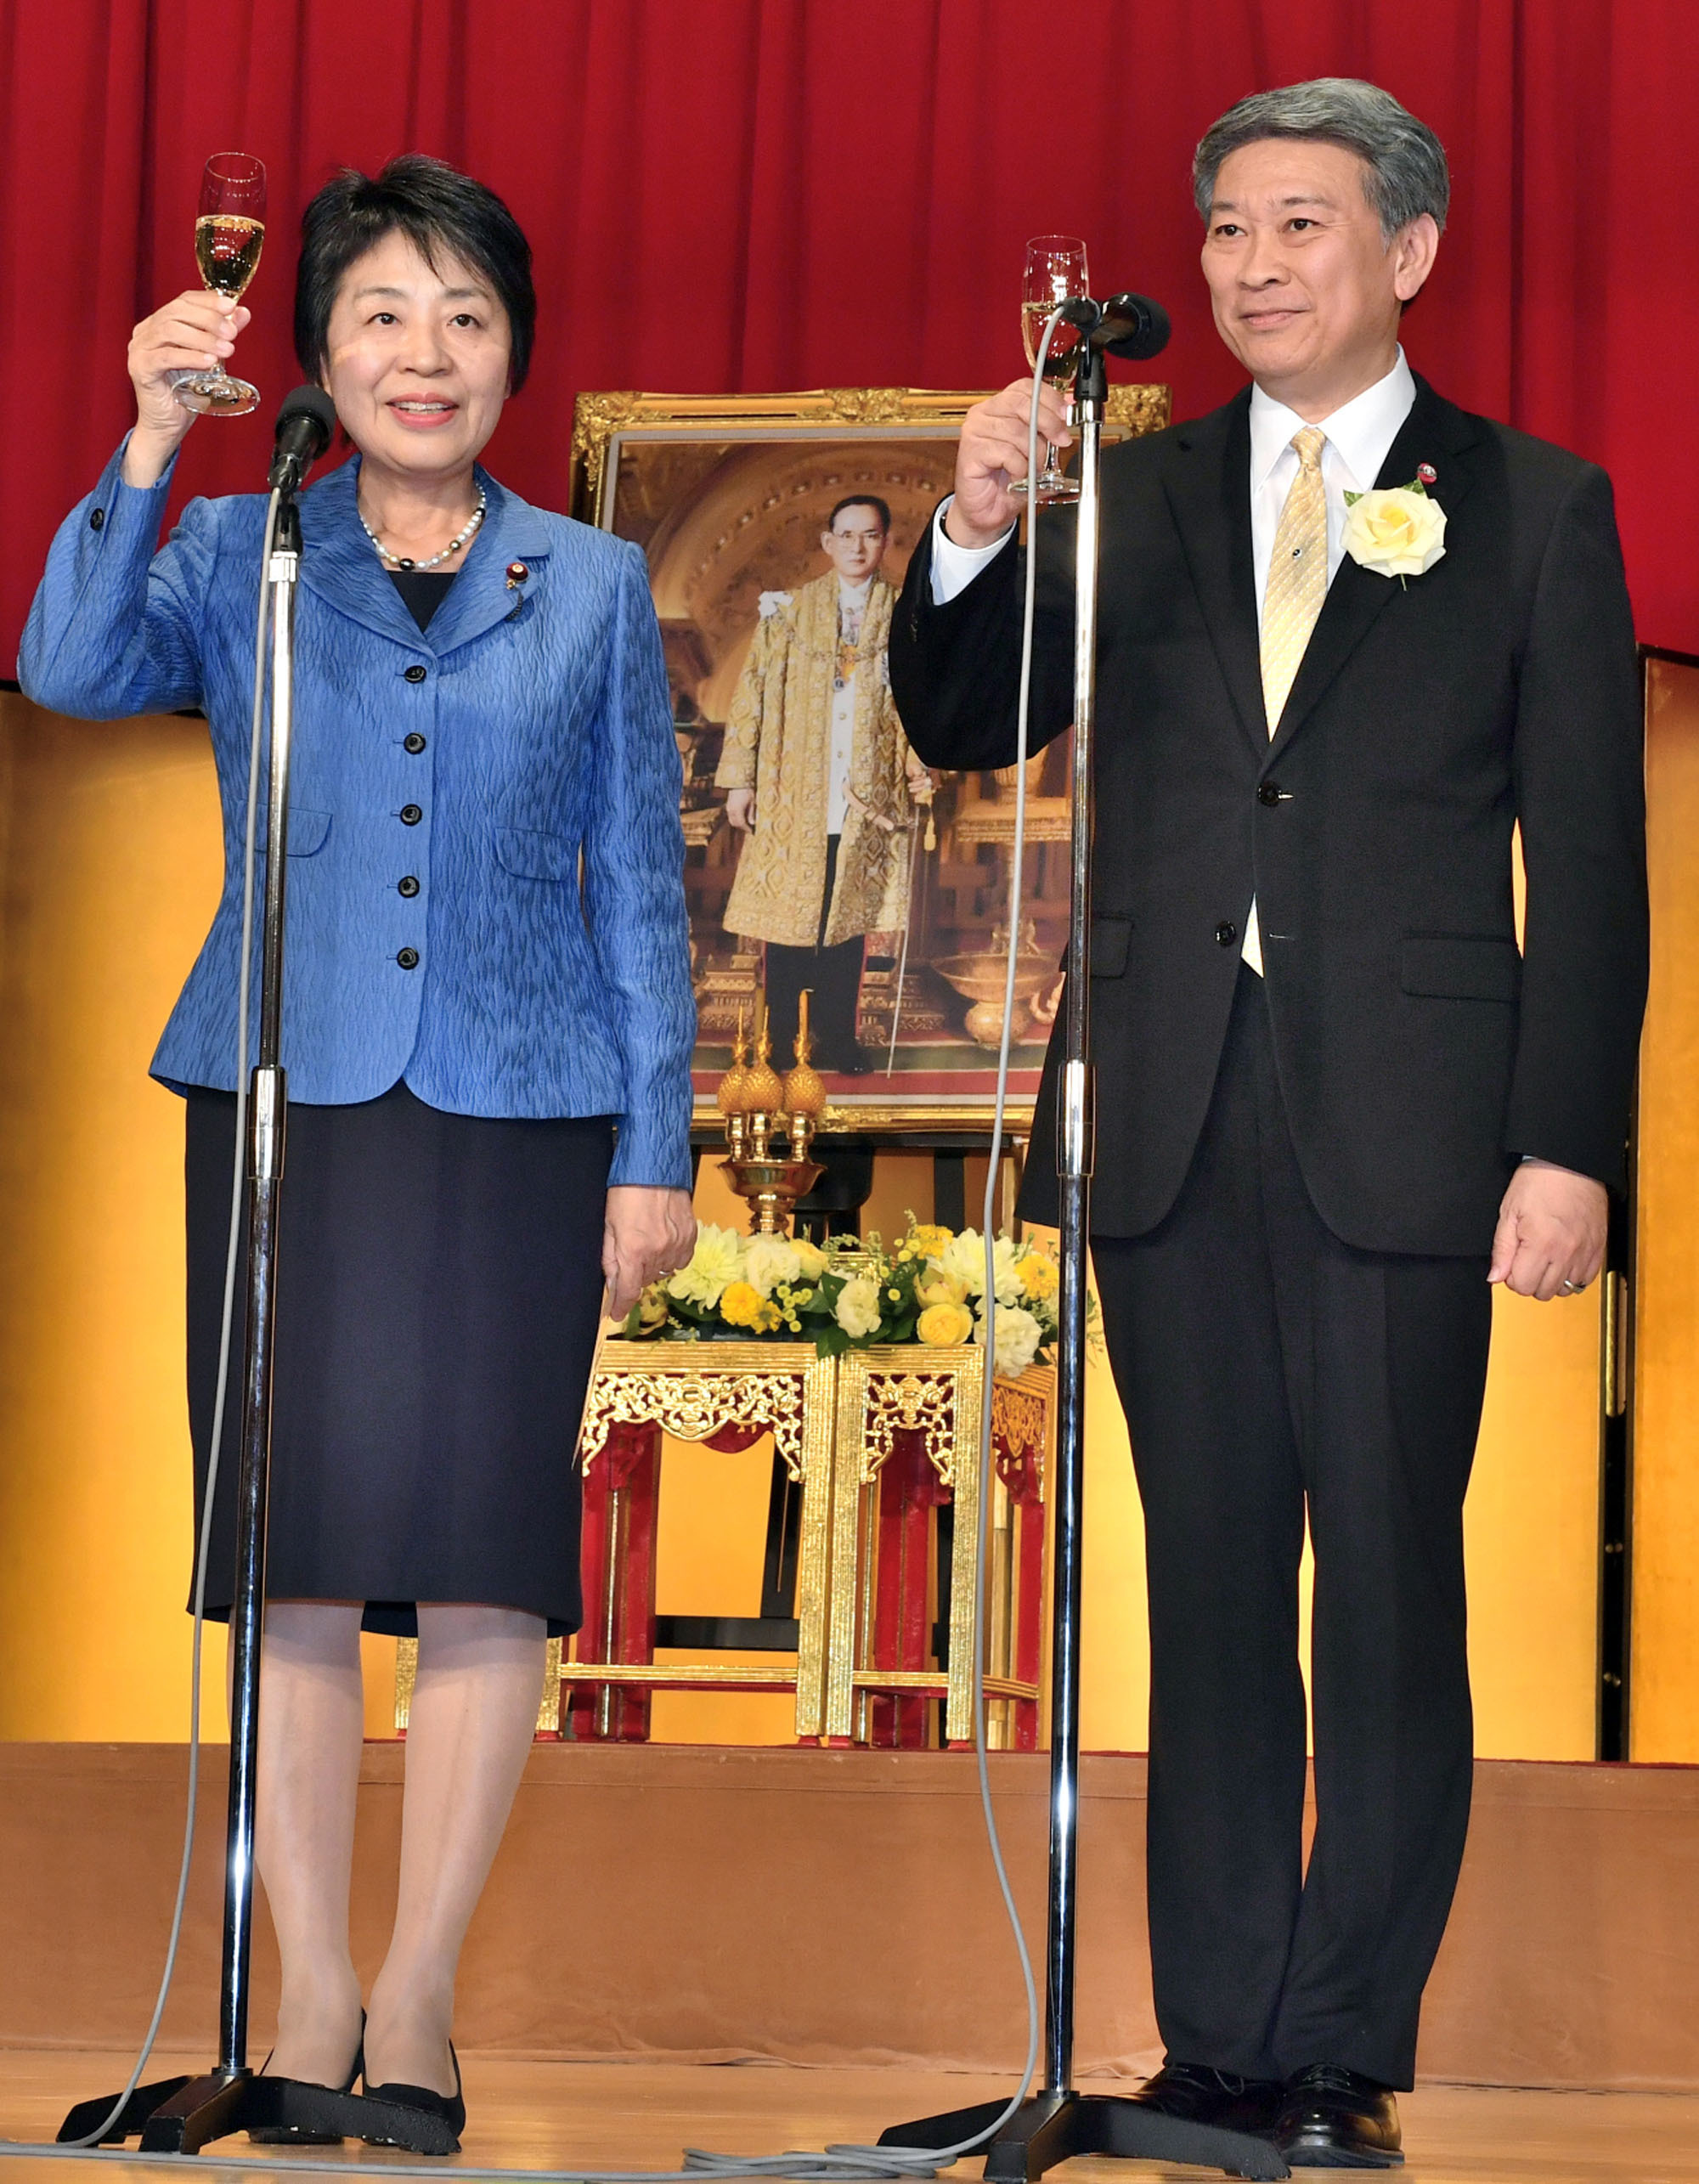 Thai Ambassador Bansarn Bunnag (right) and Justice Minister Yoko Kamikawa celebrate Thailand's national day at the Imperial Hotel on Dec. 5. |  YOSHIAKI MIURA